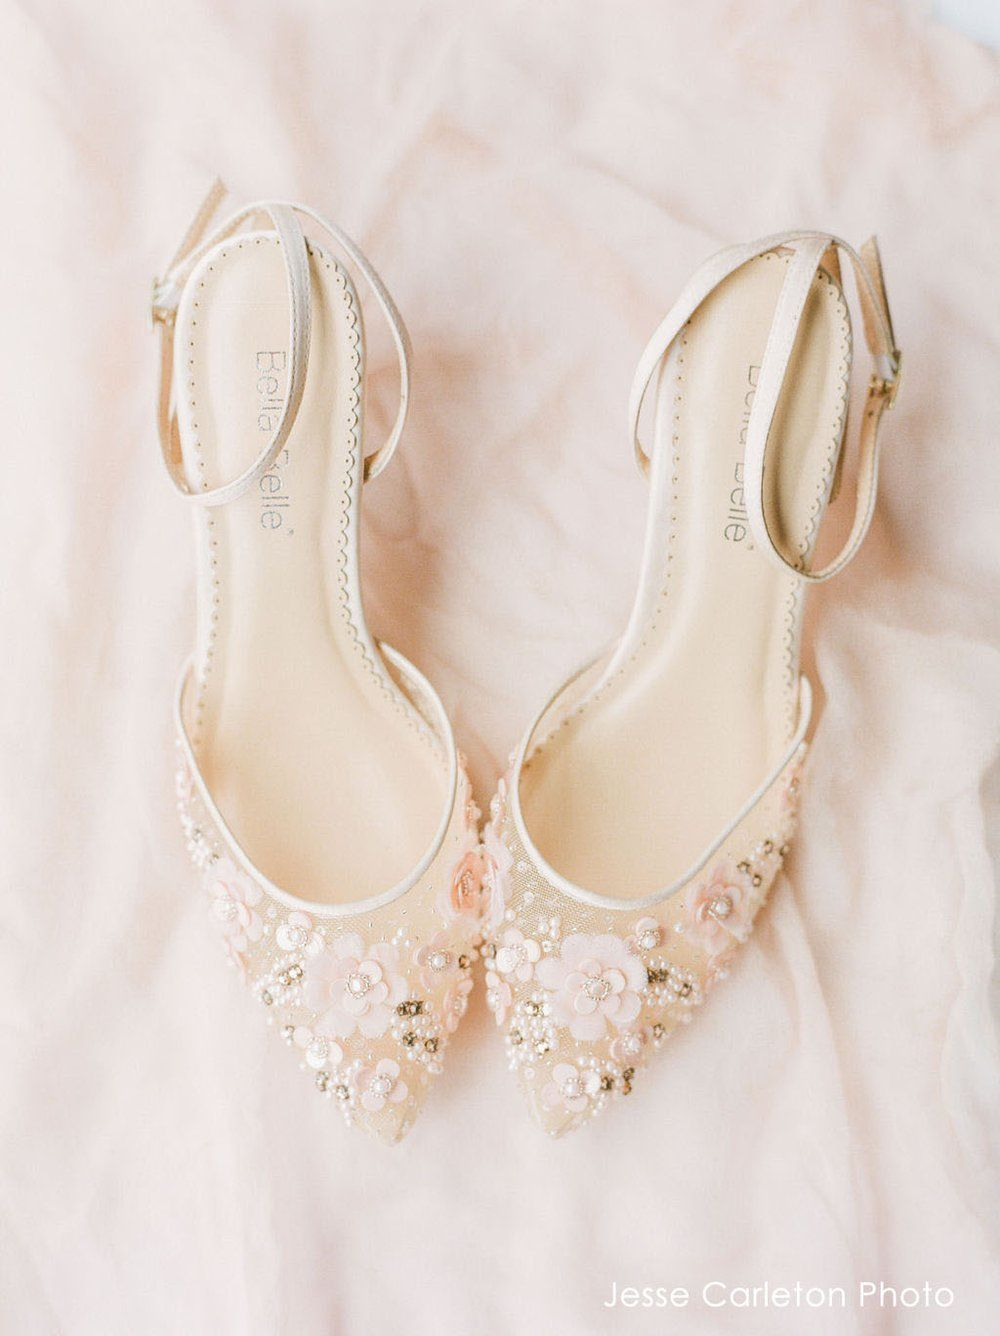 Low Heel Pearl Wedding Evening Shoes In 2020 Wedding Shoes Heels Blush Wedding Shoes Pearl Wedding Shoes